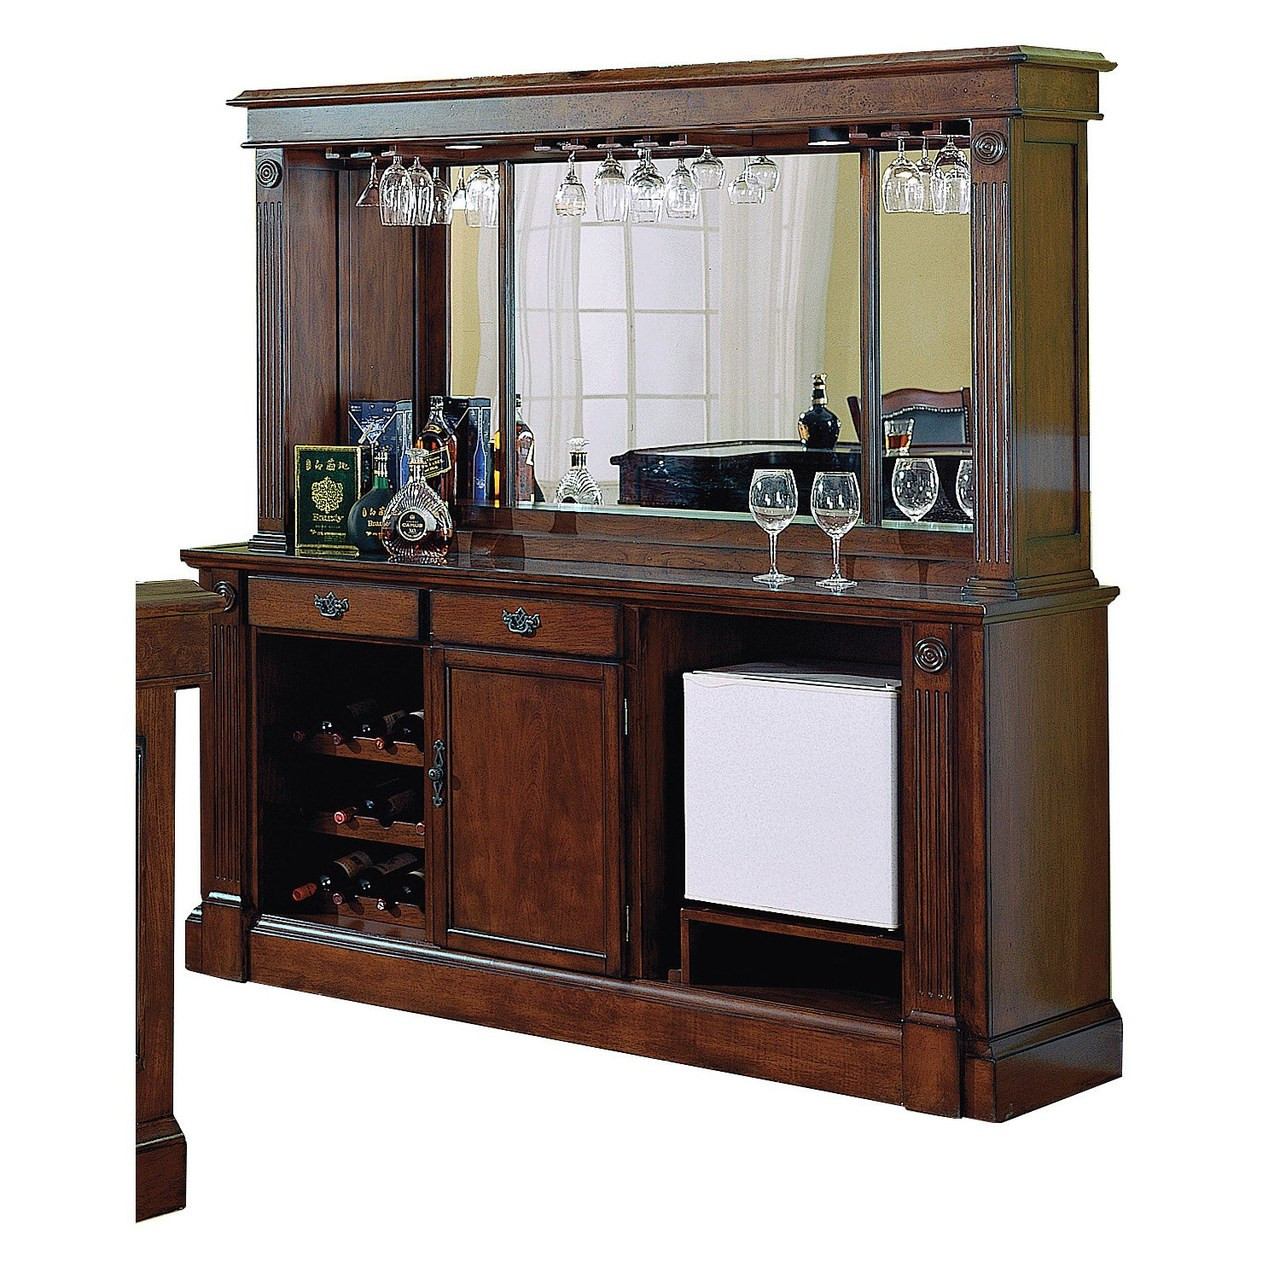 Picture of: Eci Monticello 78 Back Bar And Hutch Free Local Delivery And Setup Gebhardts Com